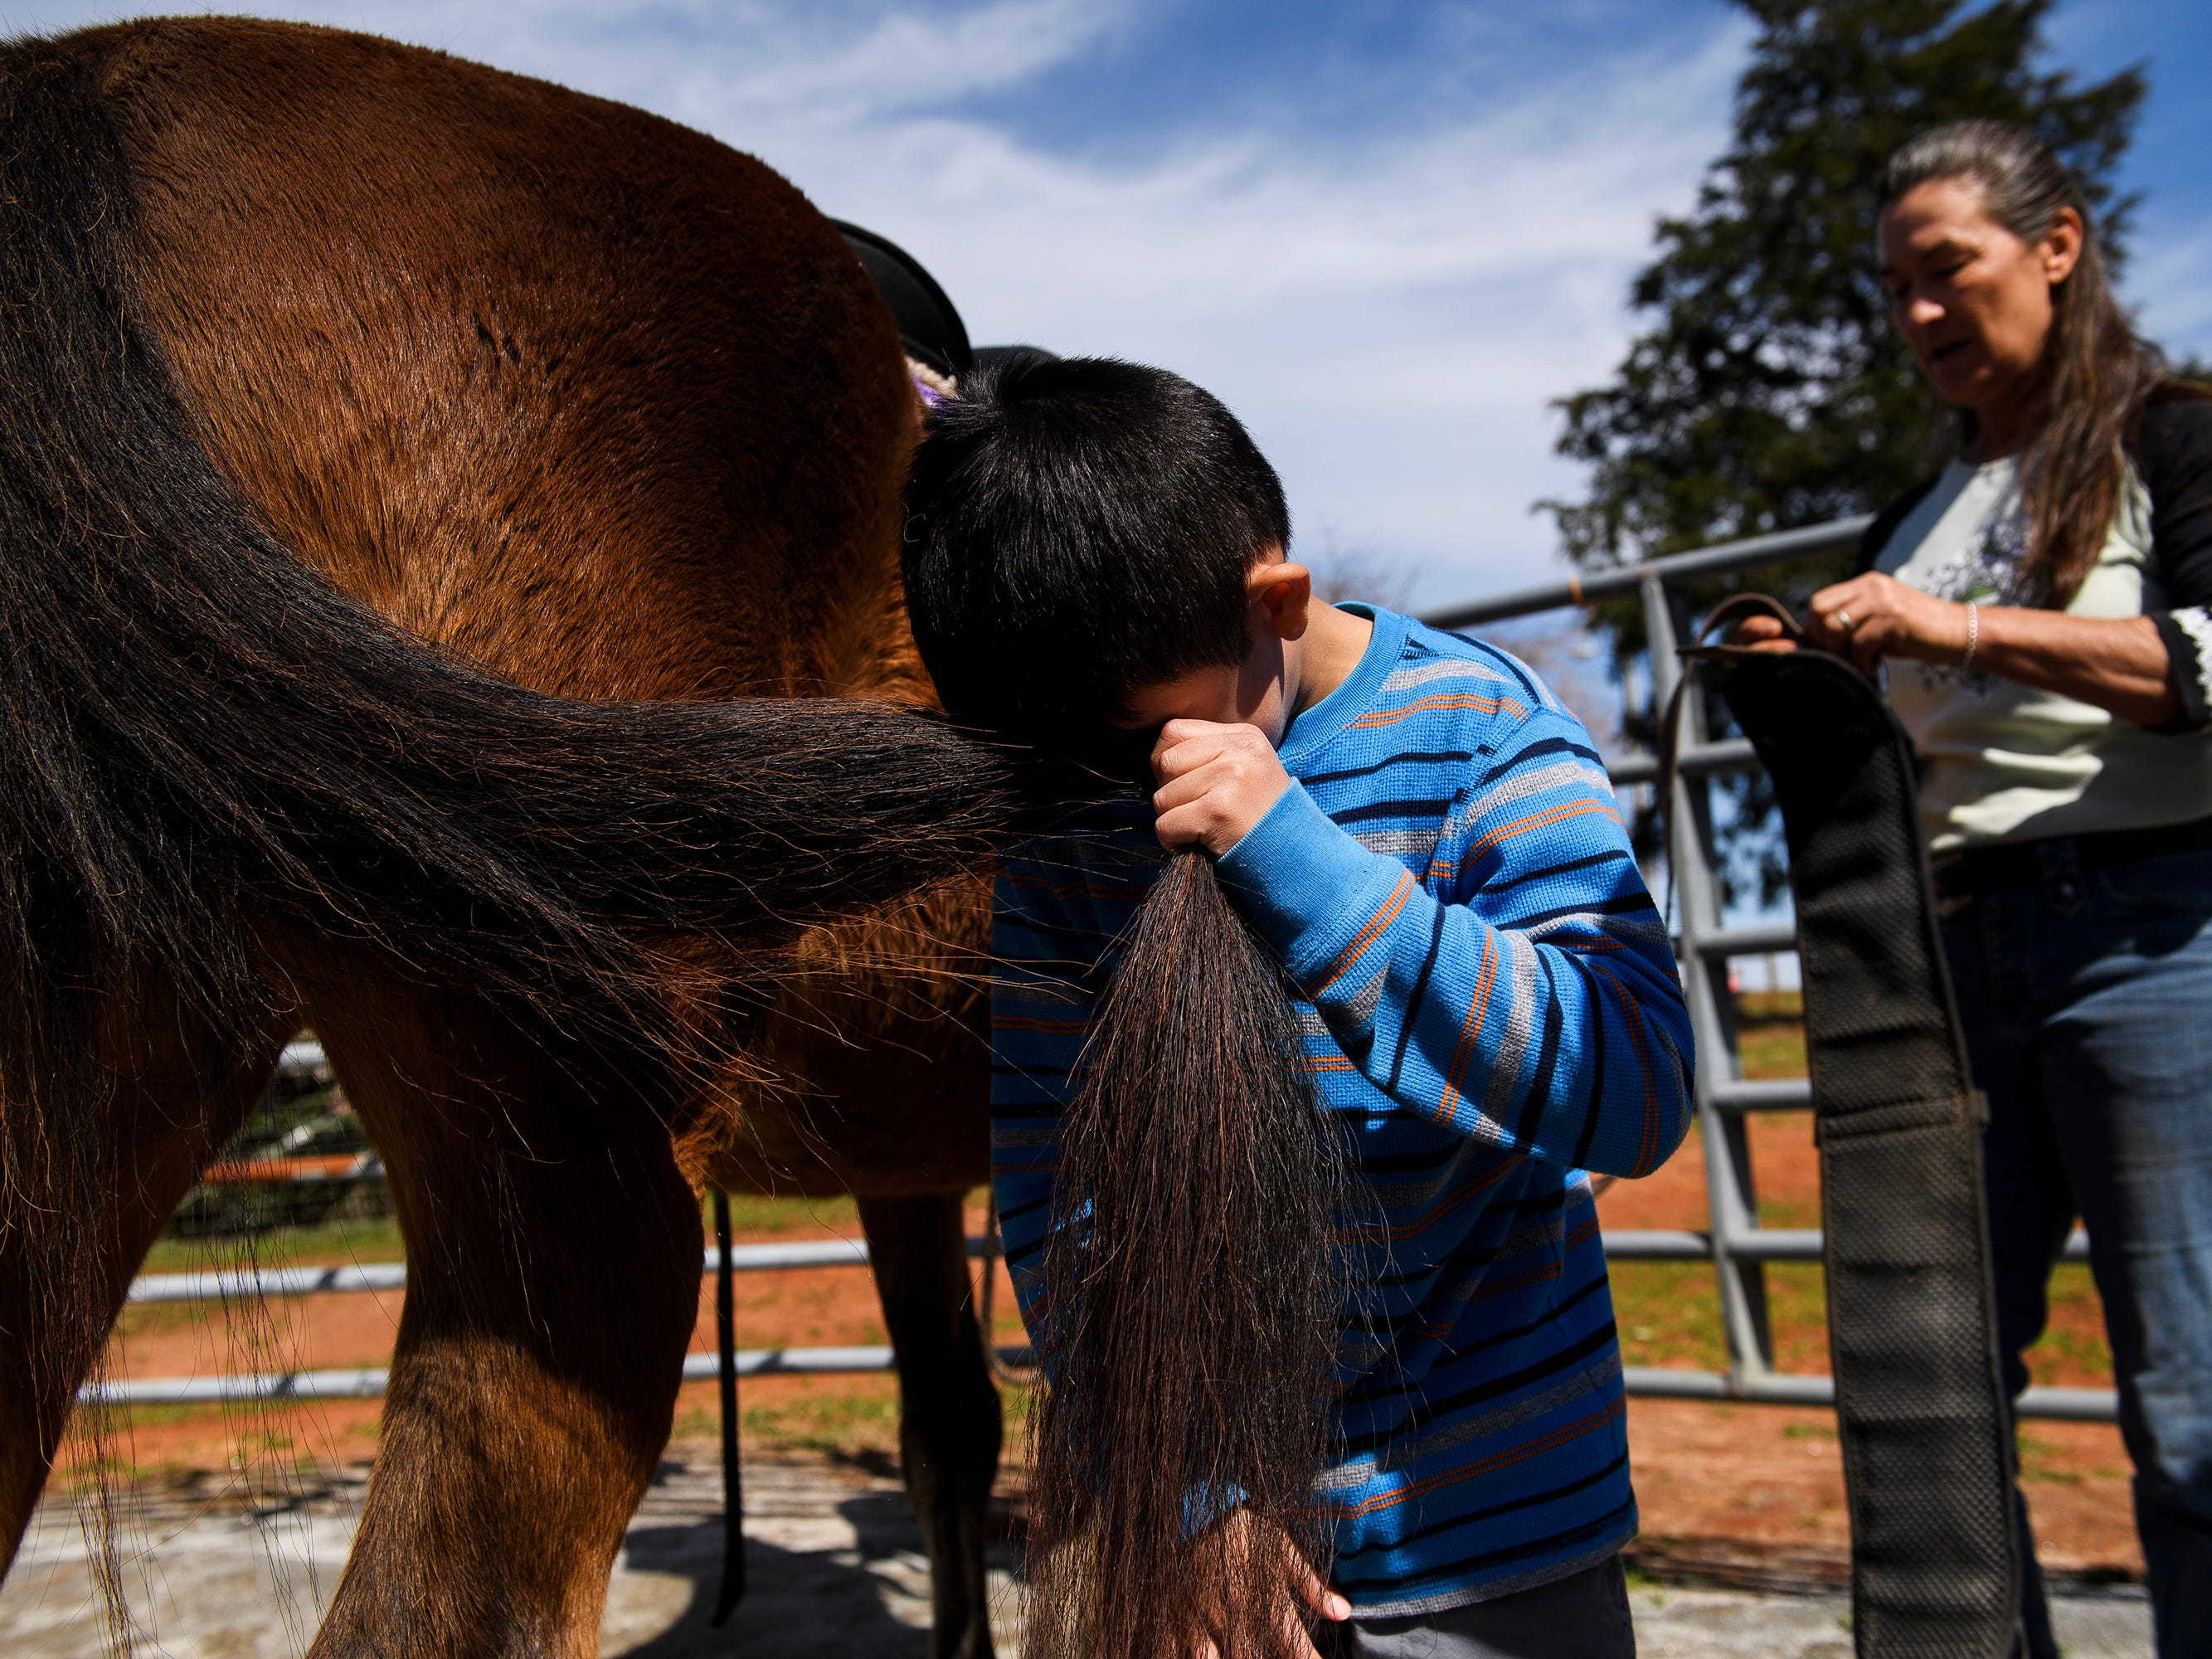 Diego Popa, 9, plays with a horse's tail before beginning his riding lesson at J Rest Farm, Tuesday, March 12, 2019.